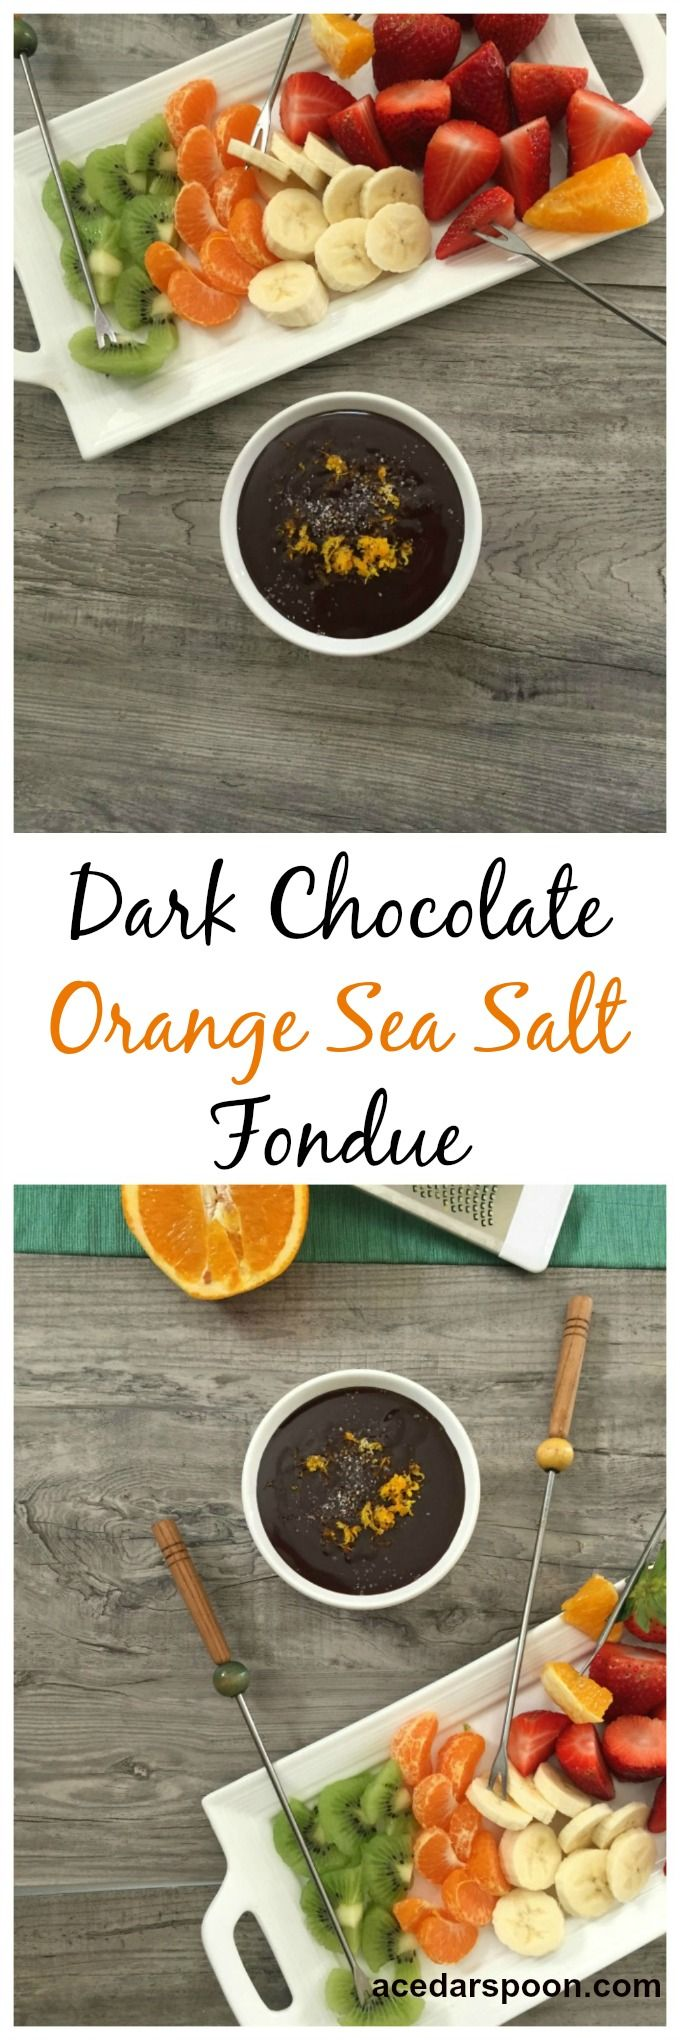 Dark Chocolate Orange Sea Salt Fondue makes a fun snack for the family, a dessert to end a special meal or a nice addition to a party. Dark chocolate, orange zest and a sprinkle of sea salt creates a decadent chocolate sauce. // A Cedar Spoon #sponsored